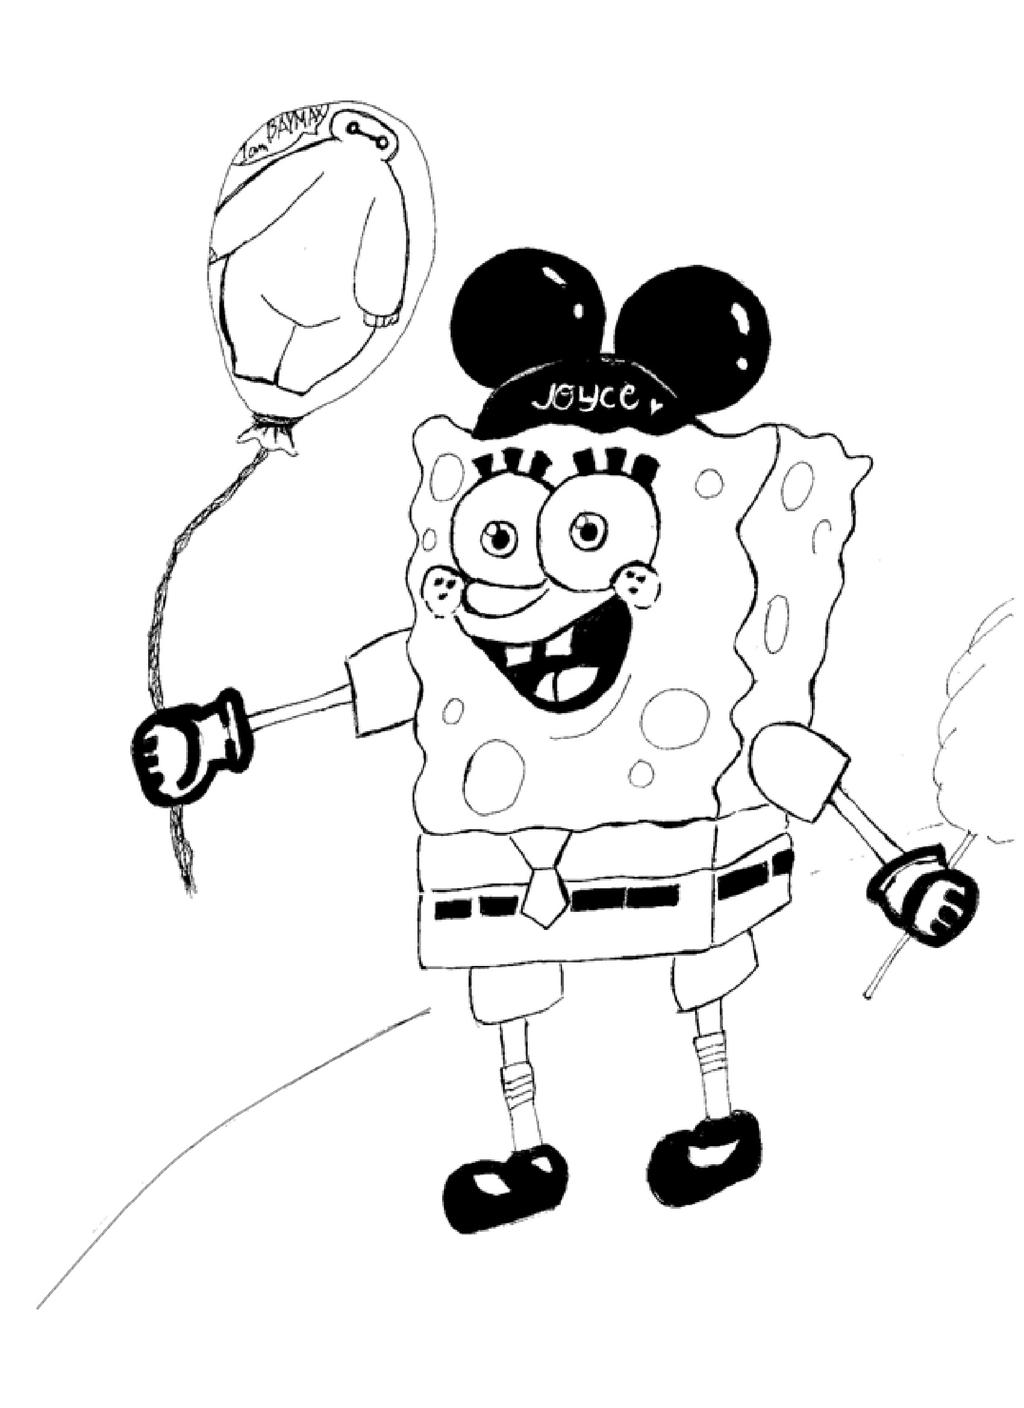 spongebob and baymax as balloon request by joyce by crazygoat20 on